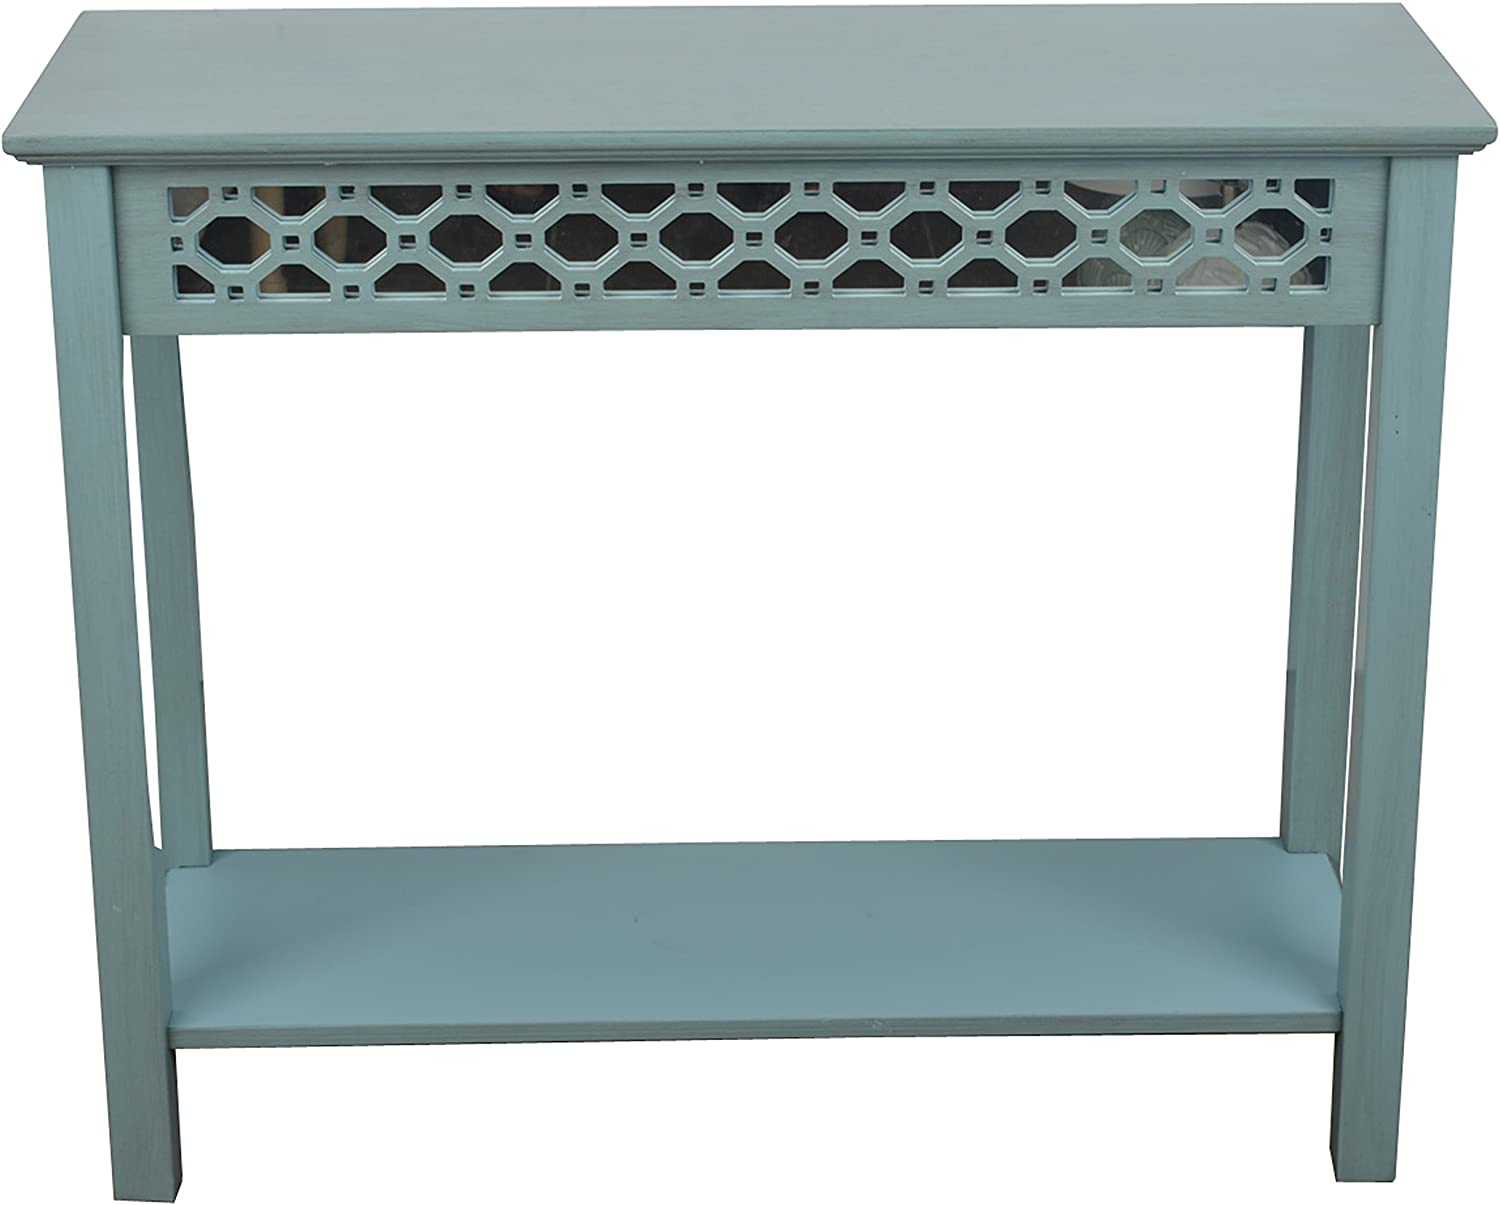 Decor Therapy Mirrored Console Translated Free shipping New Table Wood FR6 Antique Blue Iced